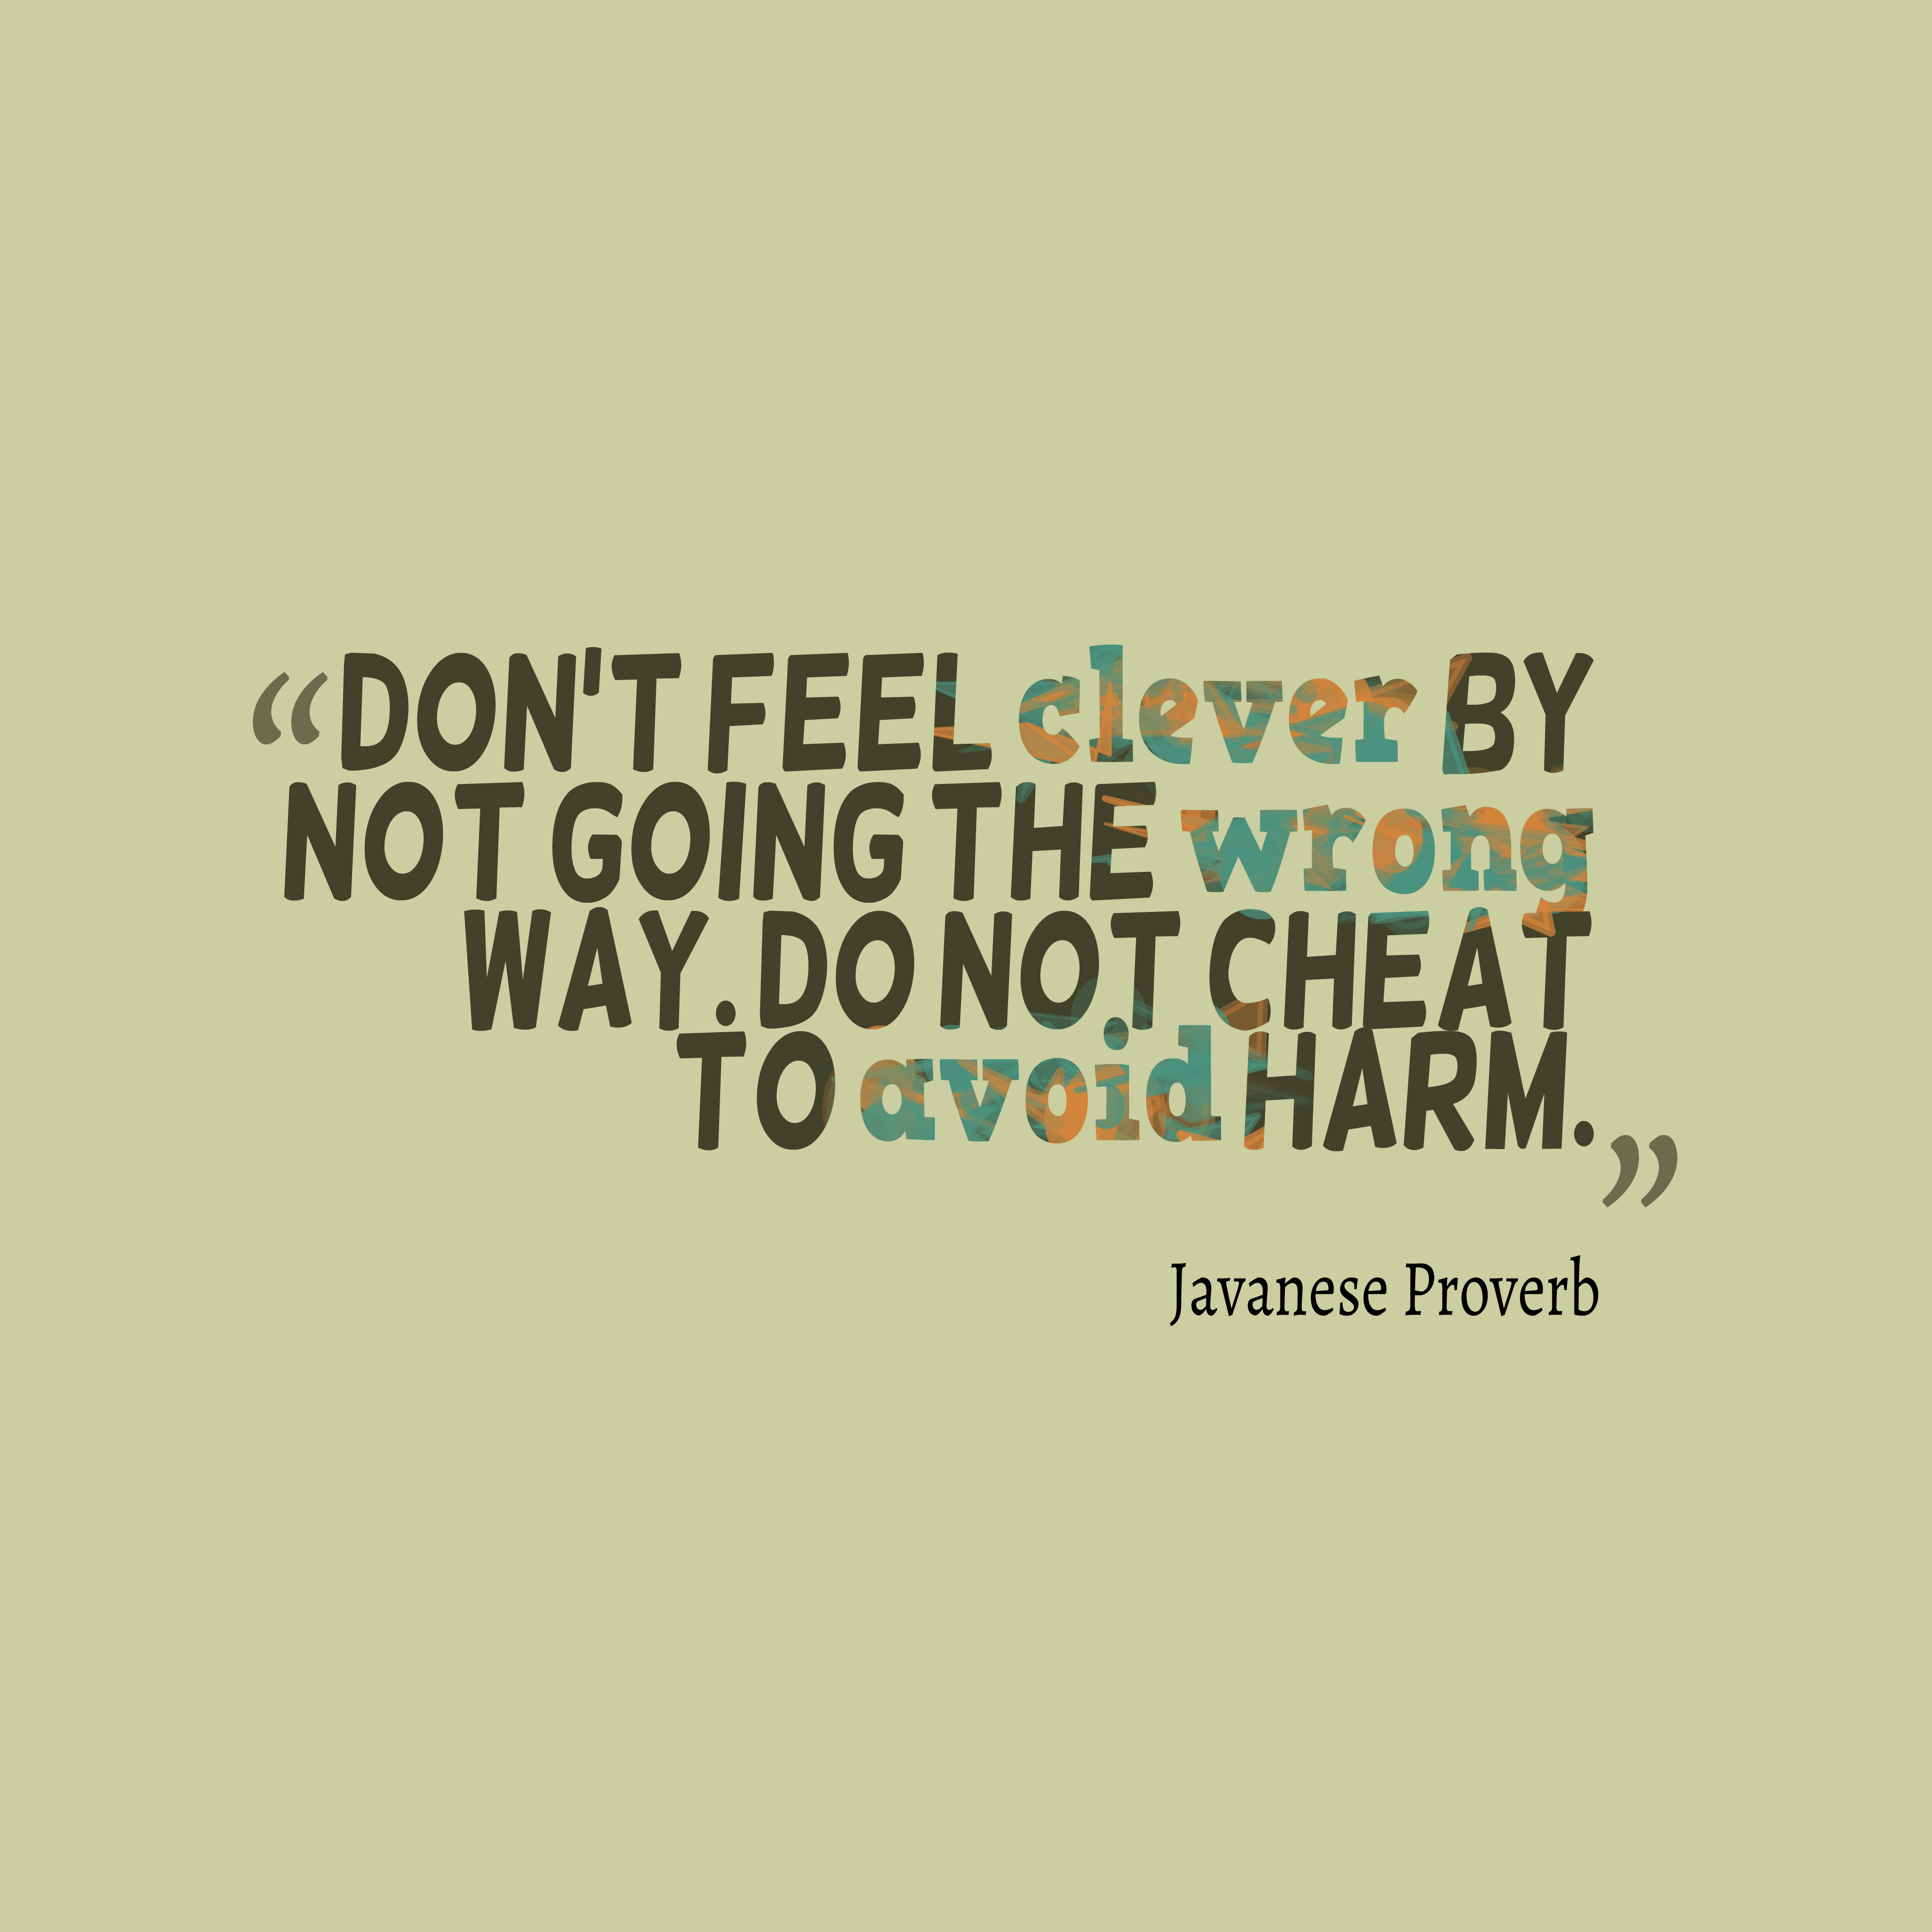 Quotes image of Don't feel clever by not going the wrong way. Do not cheat to avoid harm.